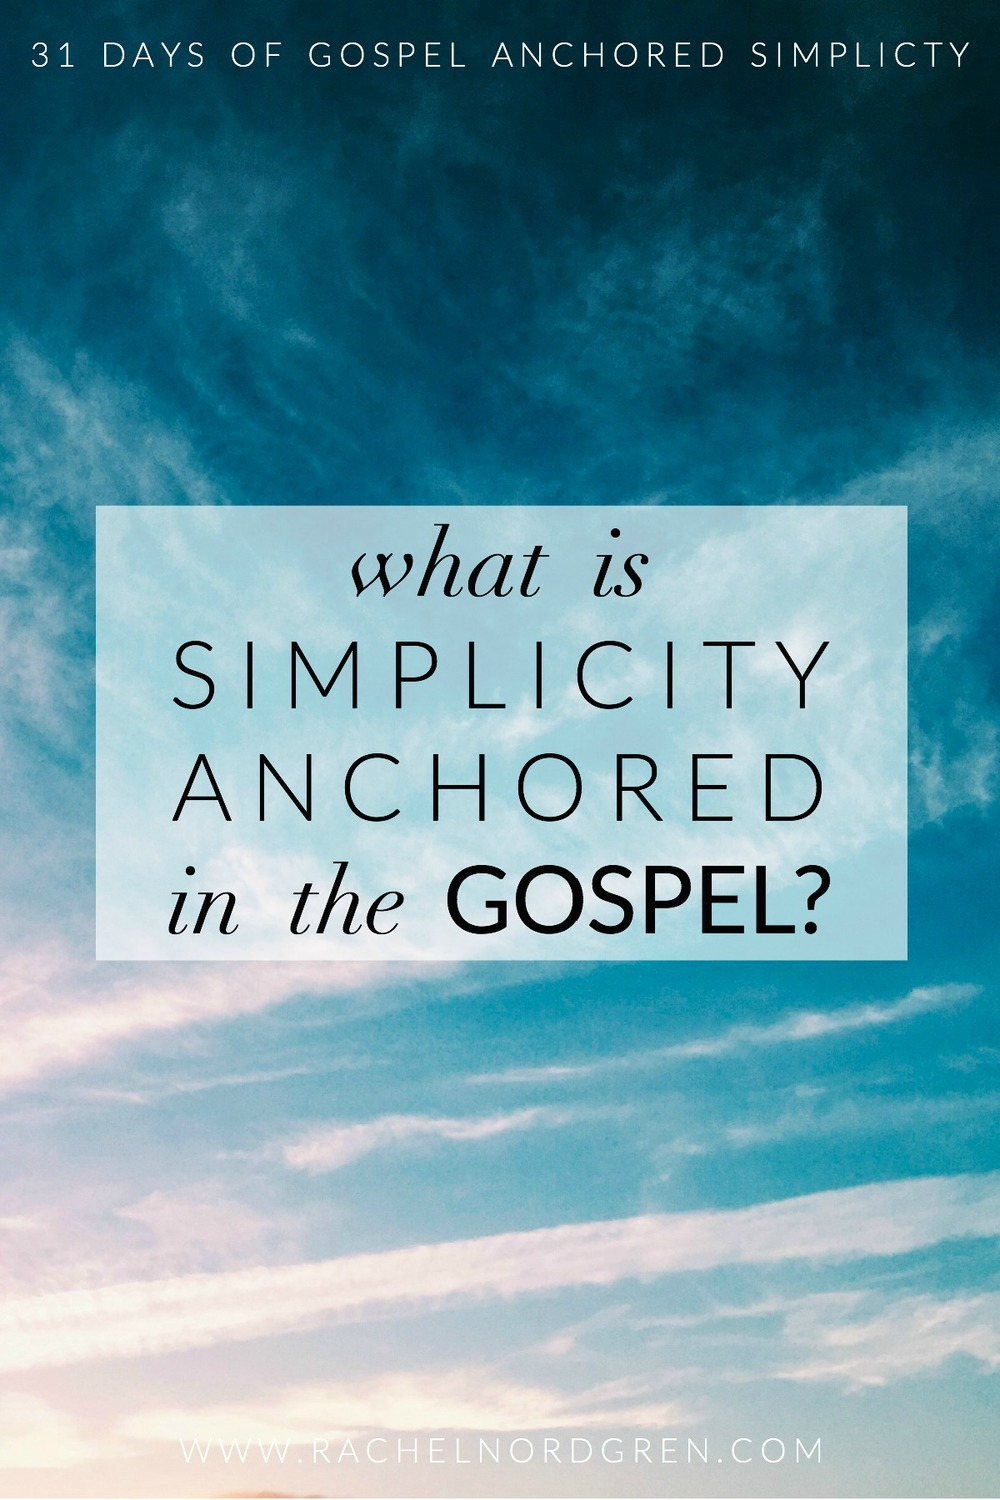 1-Write-31-Days-What-is-Simplicity-Anchored-in-the-Gospel.jpg